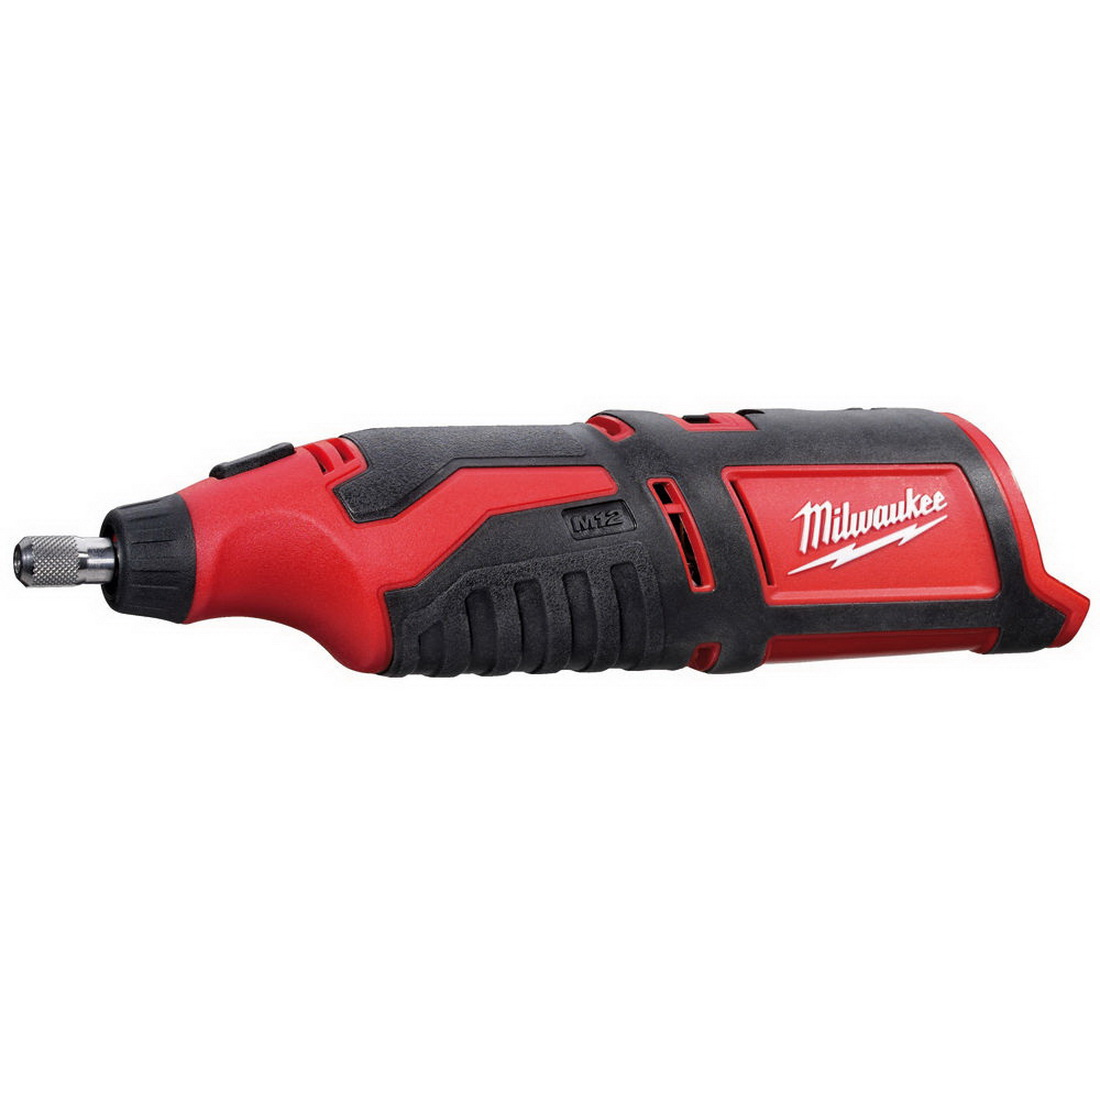 M12 Rotary Tool (Tool Only)